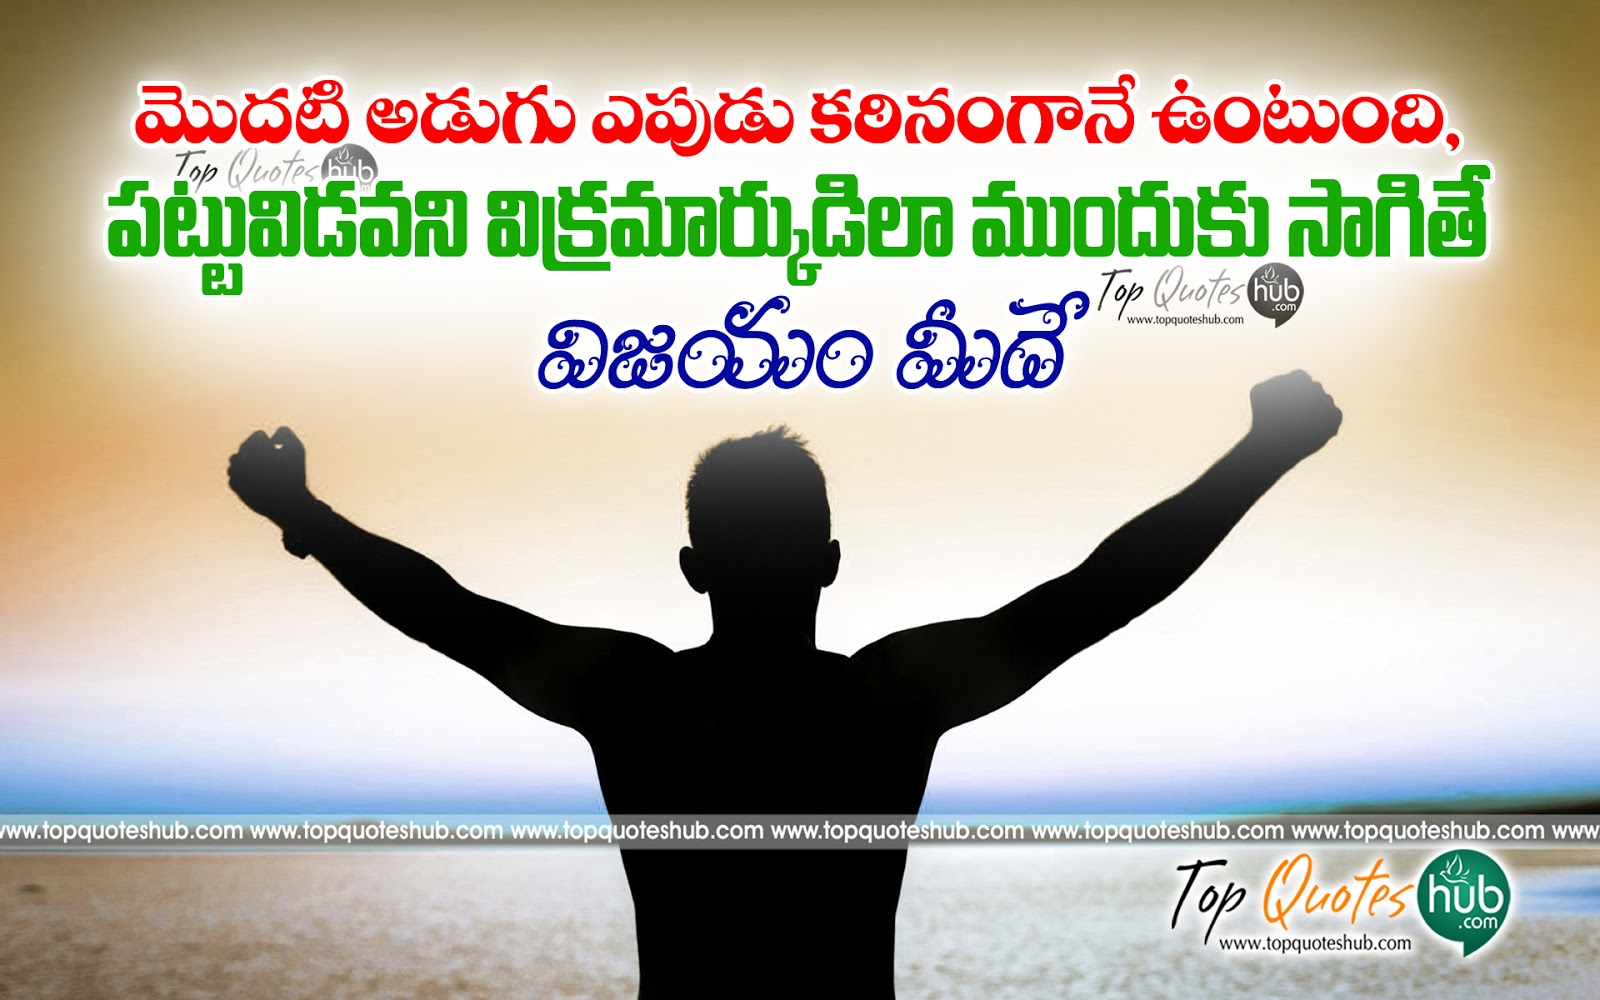 Telugu Success Greetings And Wishes Quotes Hd Images Topquoteshub